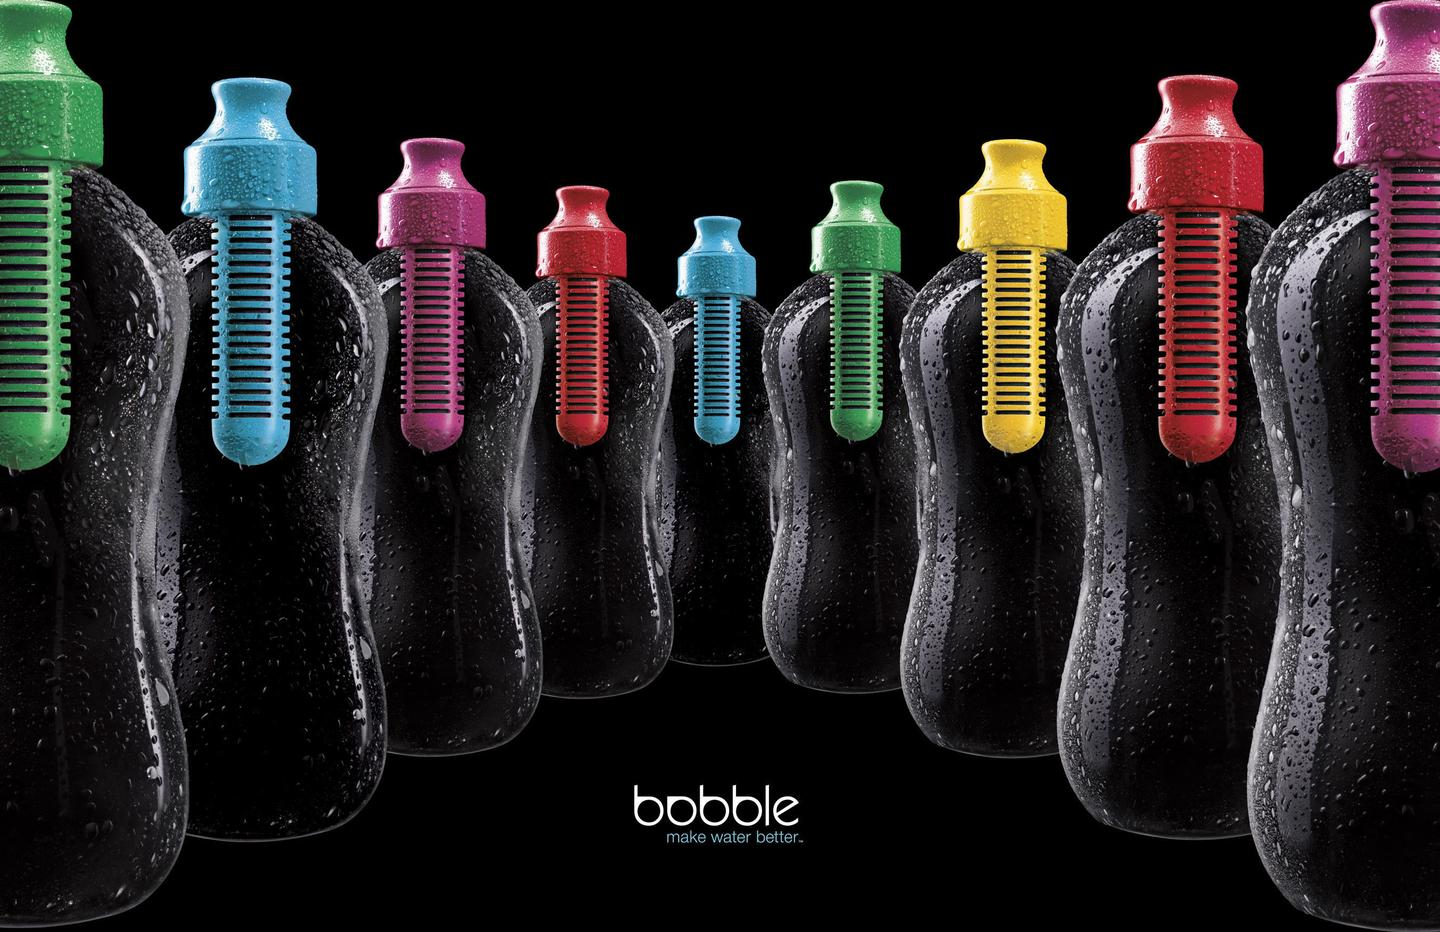 The bobble reusable water bottle features an activated carbon filter